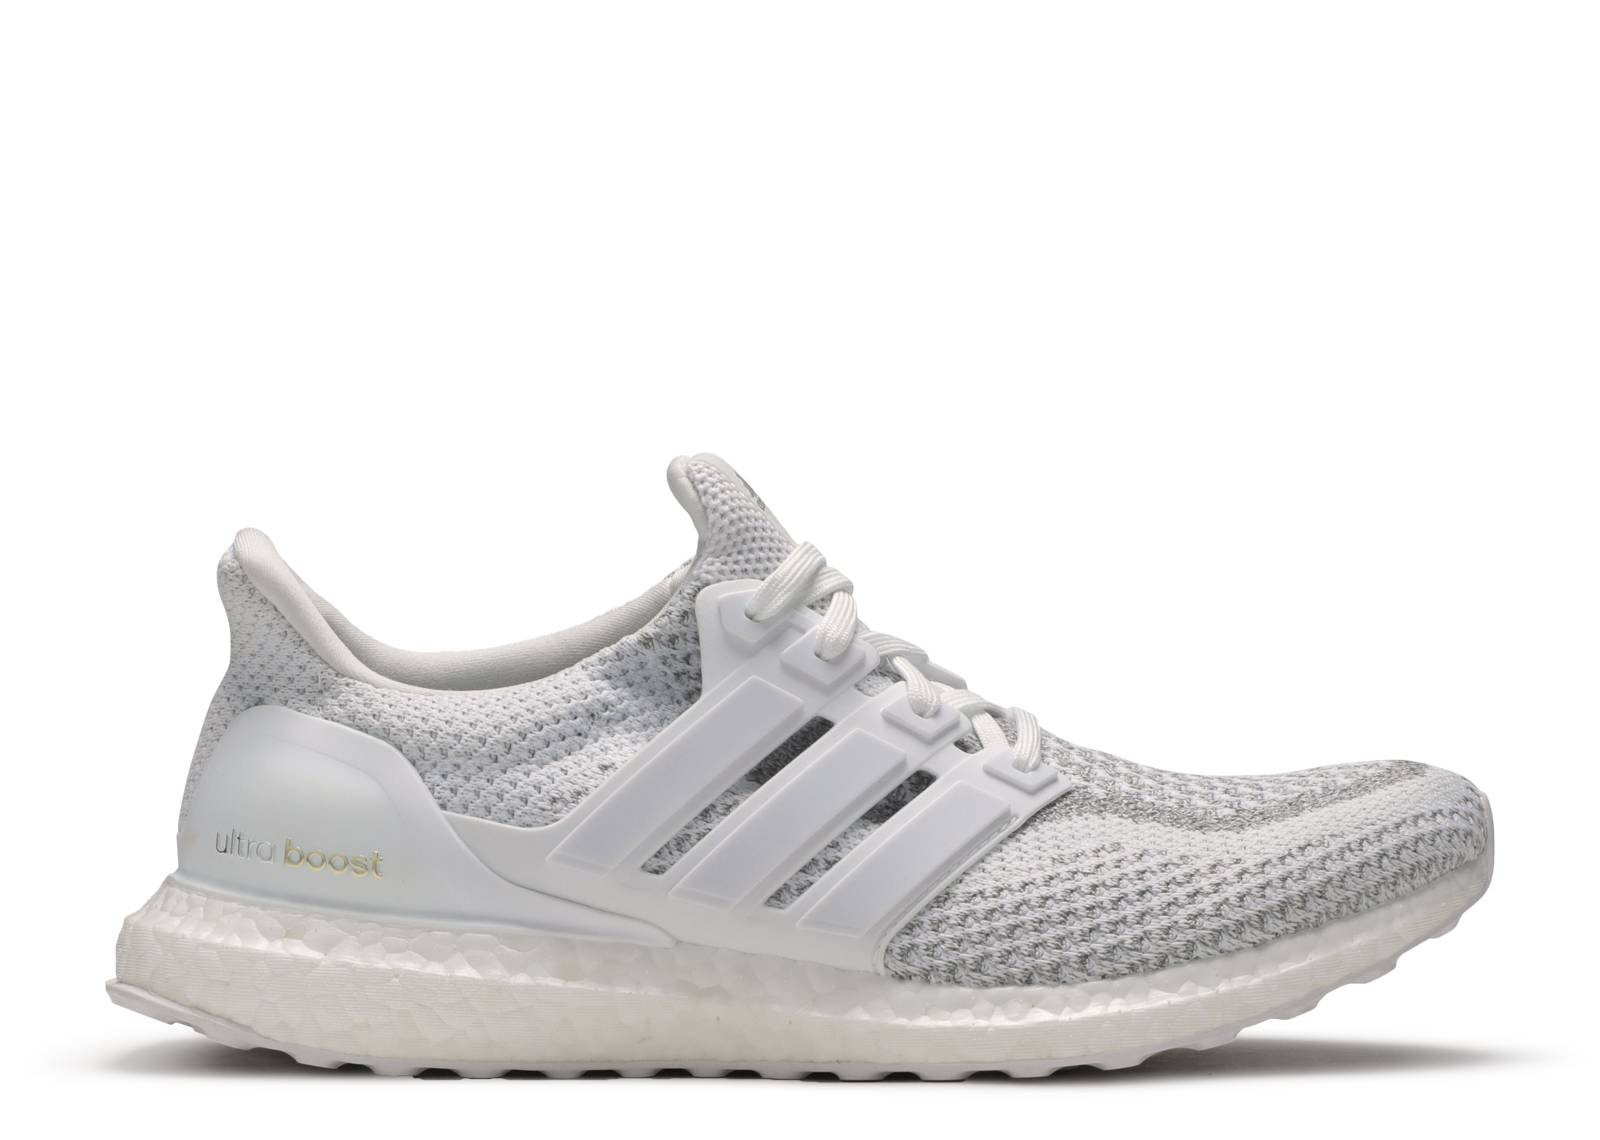 ed5a572ee Ultra Boost Ltd